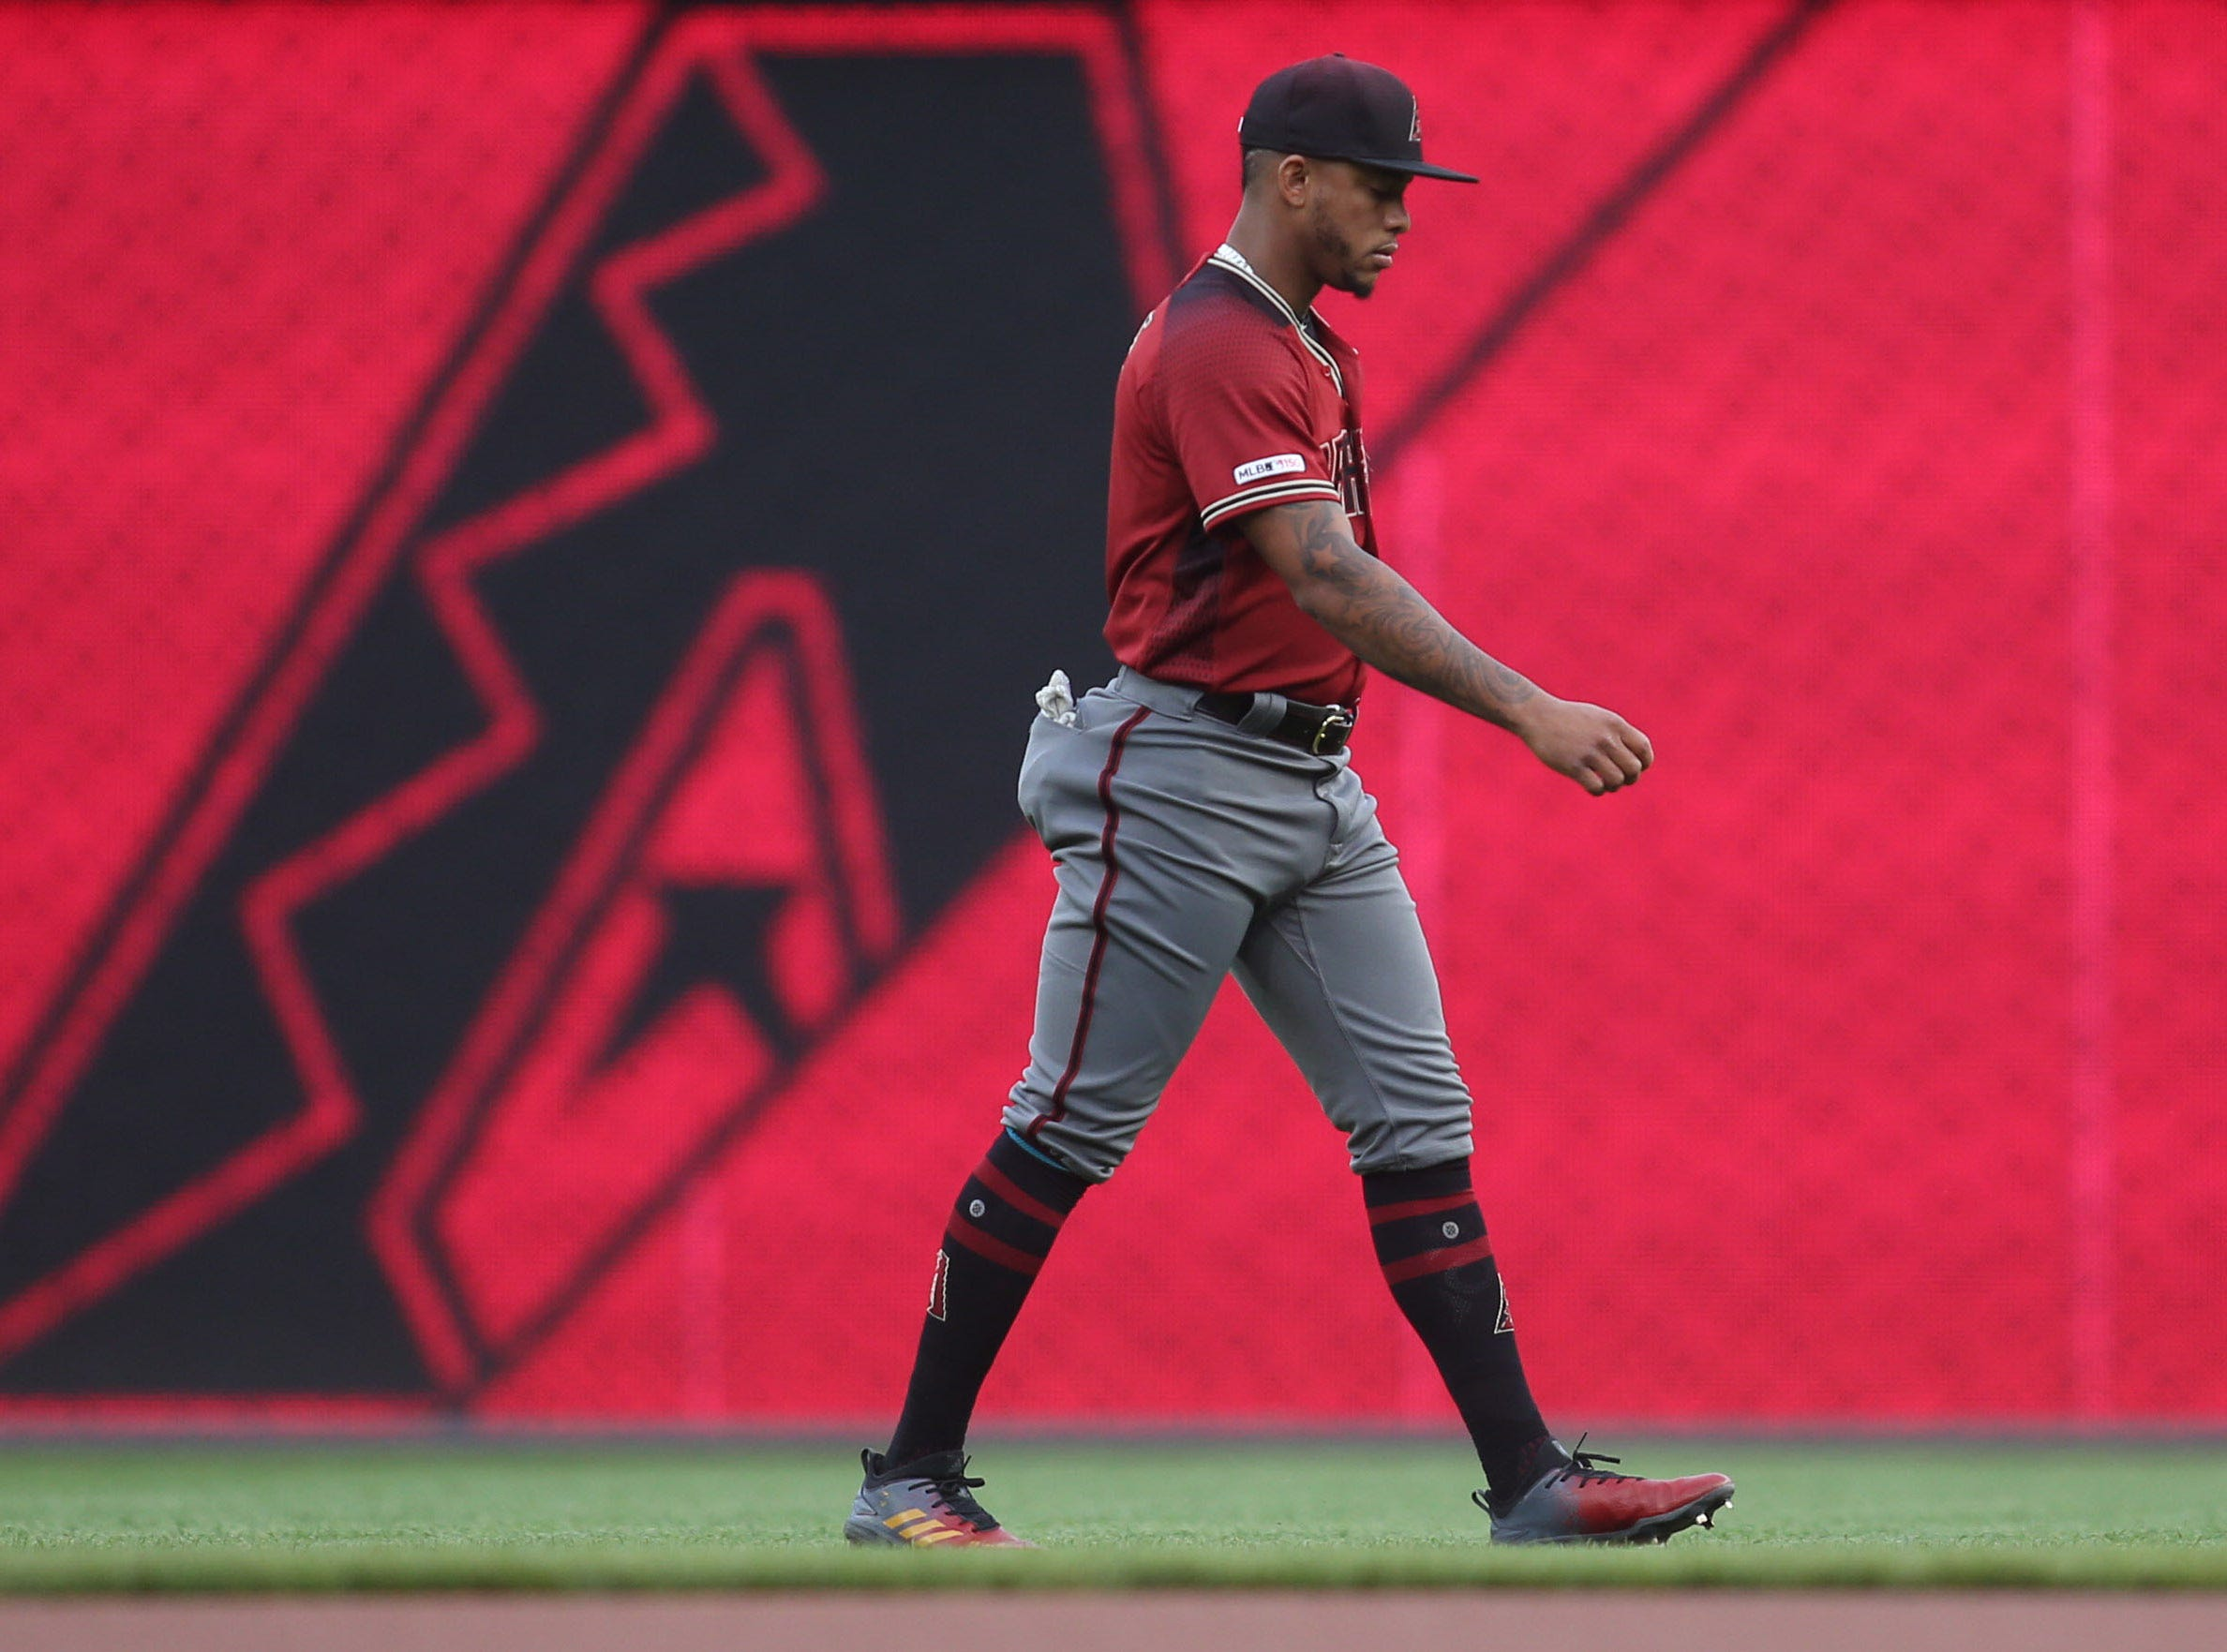 Apr 24, 2019; Pittsburgh, PA, USA; Arizona Diamondbacks centerfielder Ketel Marte (4) warms up in the outfield before playing the Pittsburgh Pirates at PNC Park. Mandatory Credit: Charles LeClaire-USA TODAY Sports